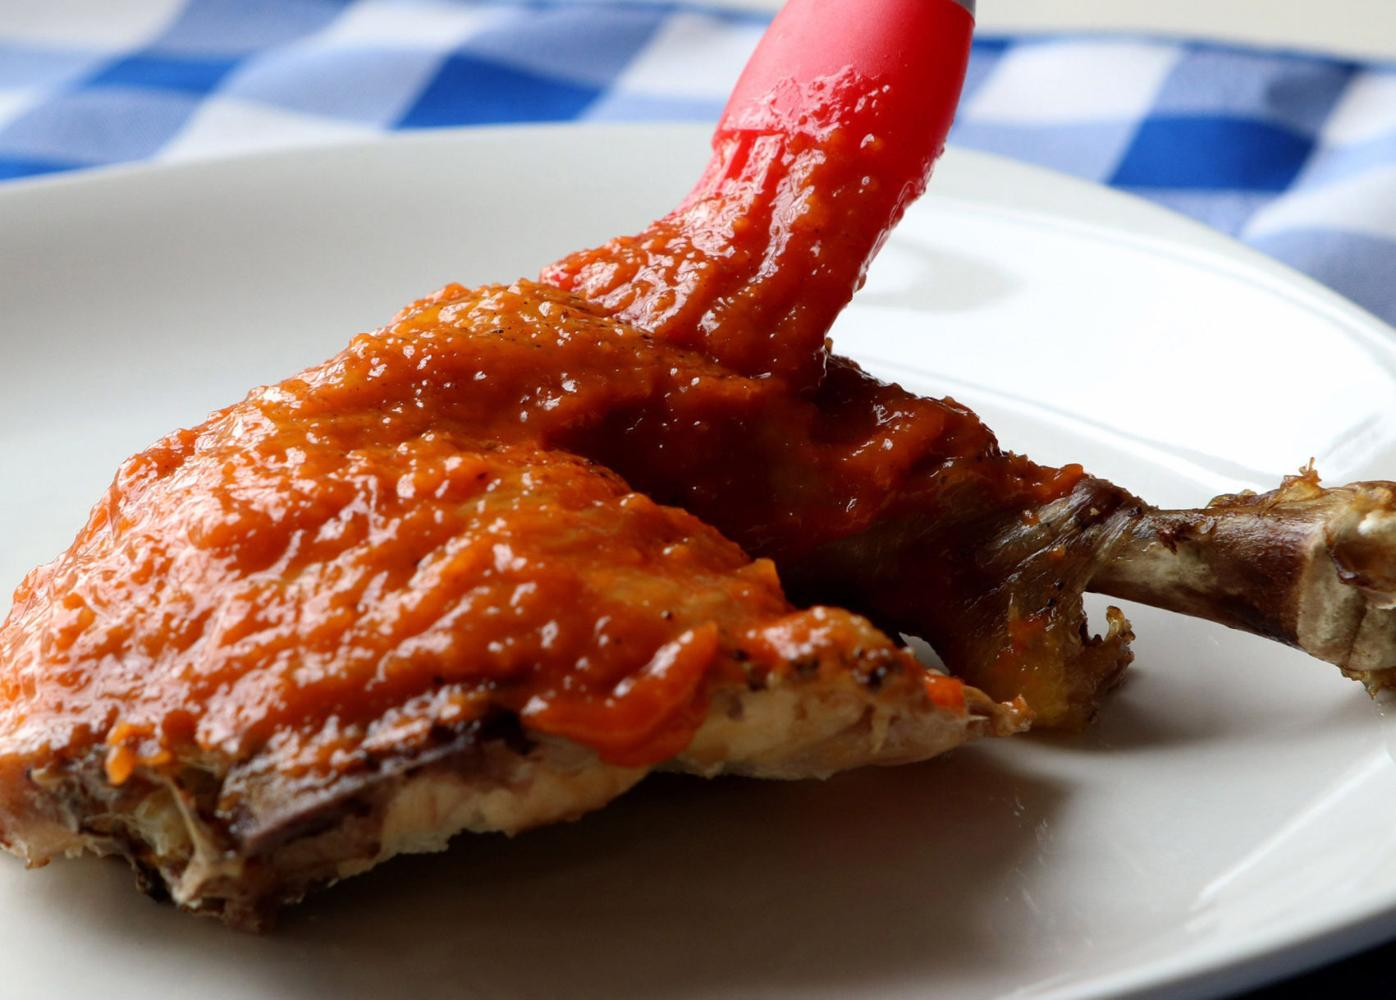 FOOD-BARBEQUE-SAUCES-3-SL